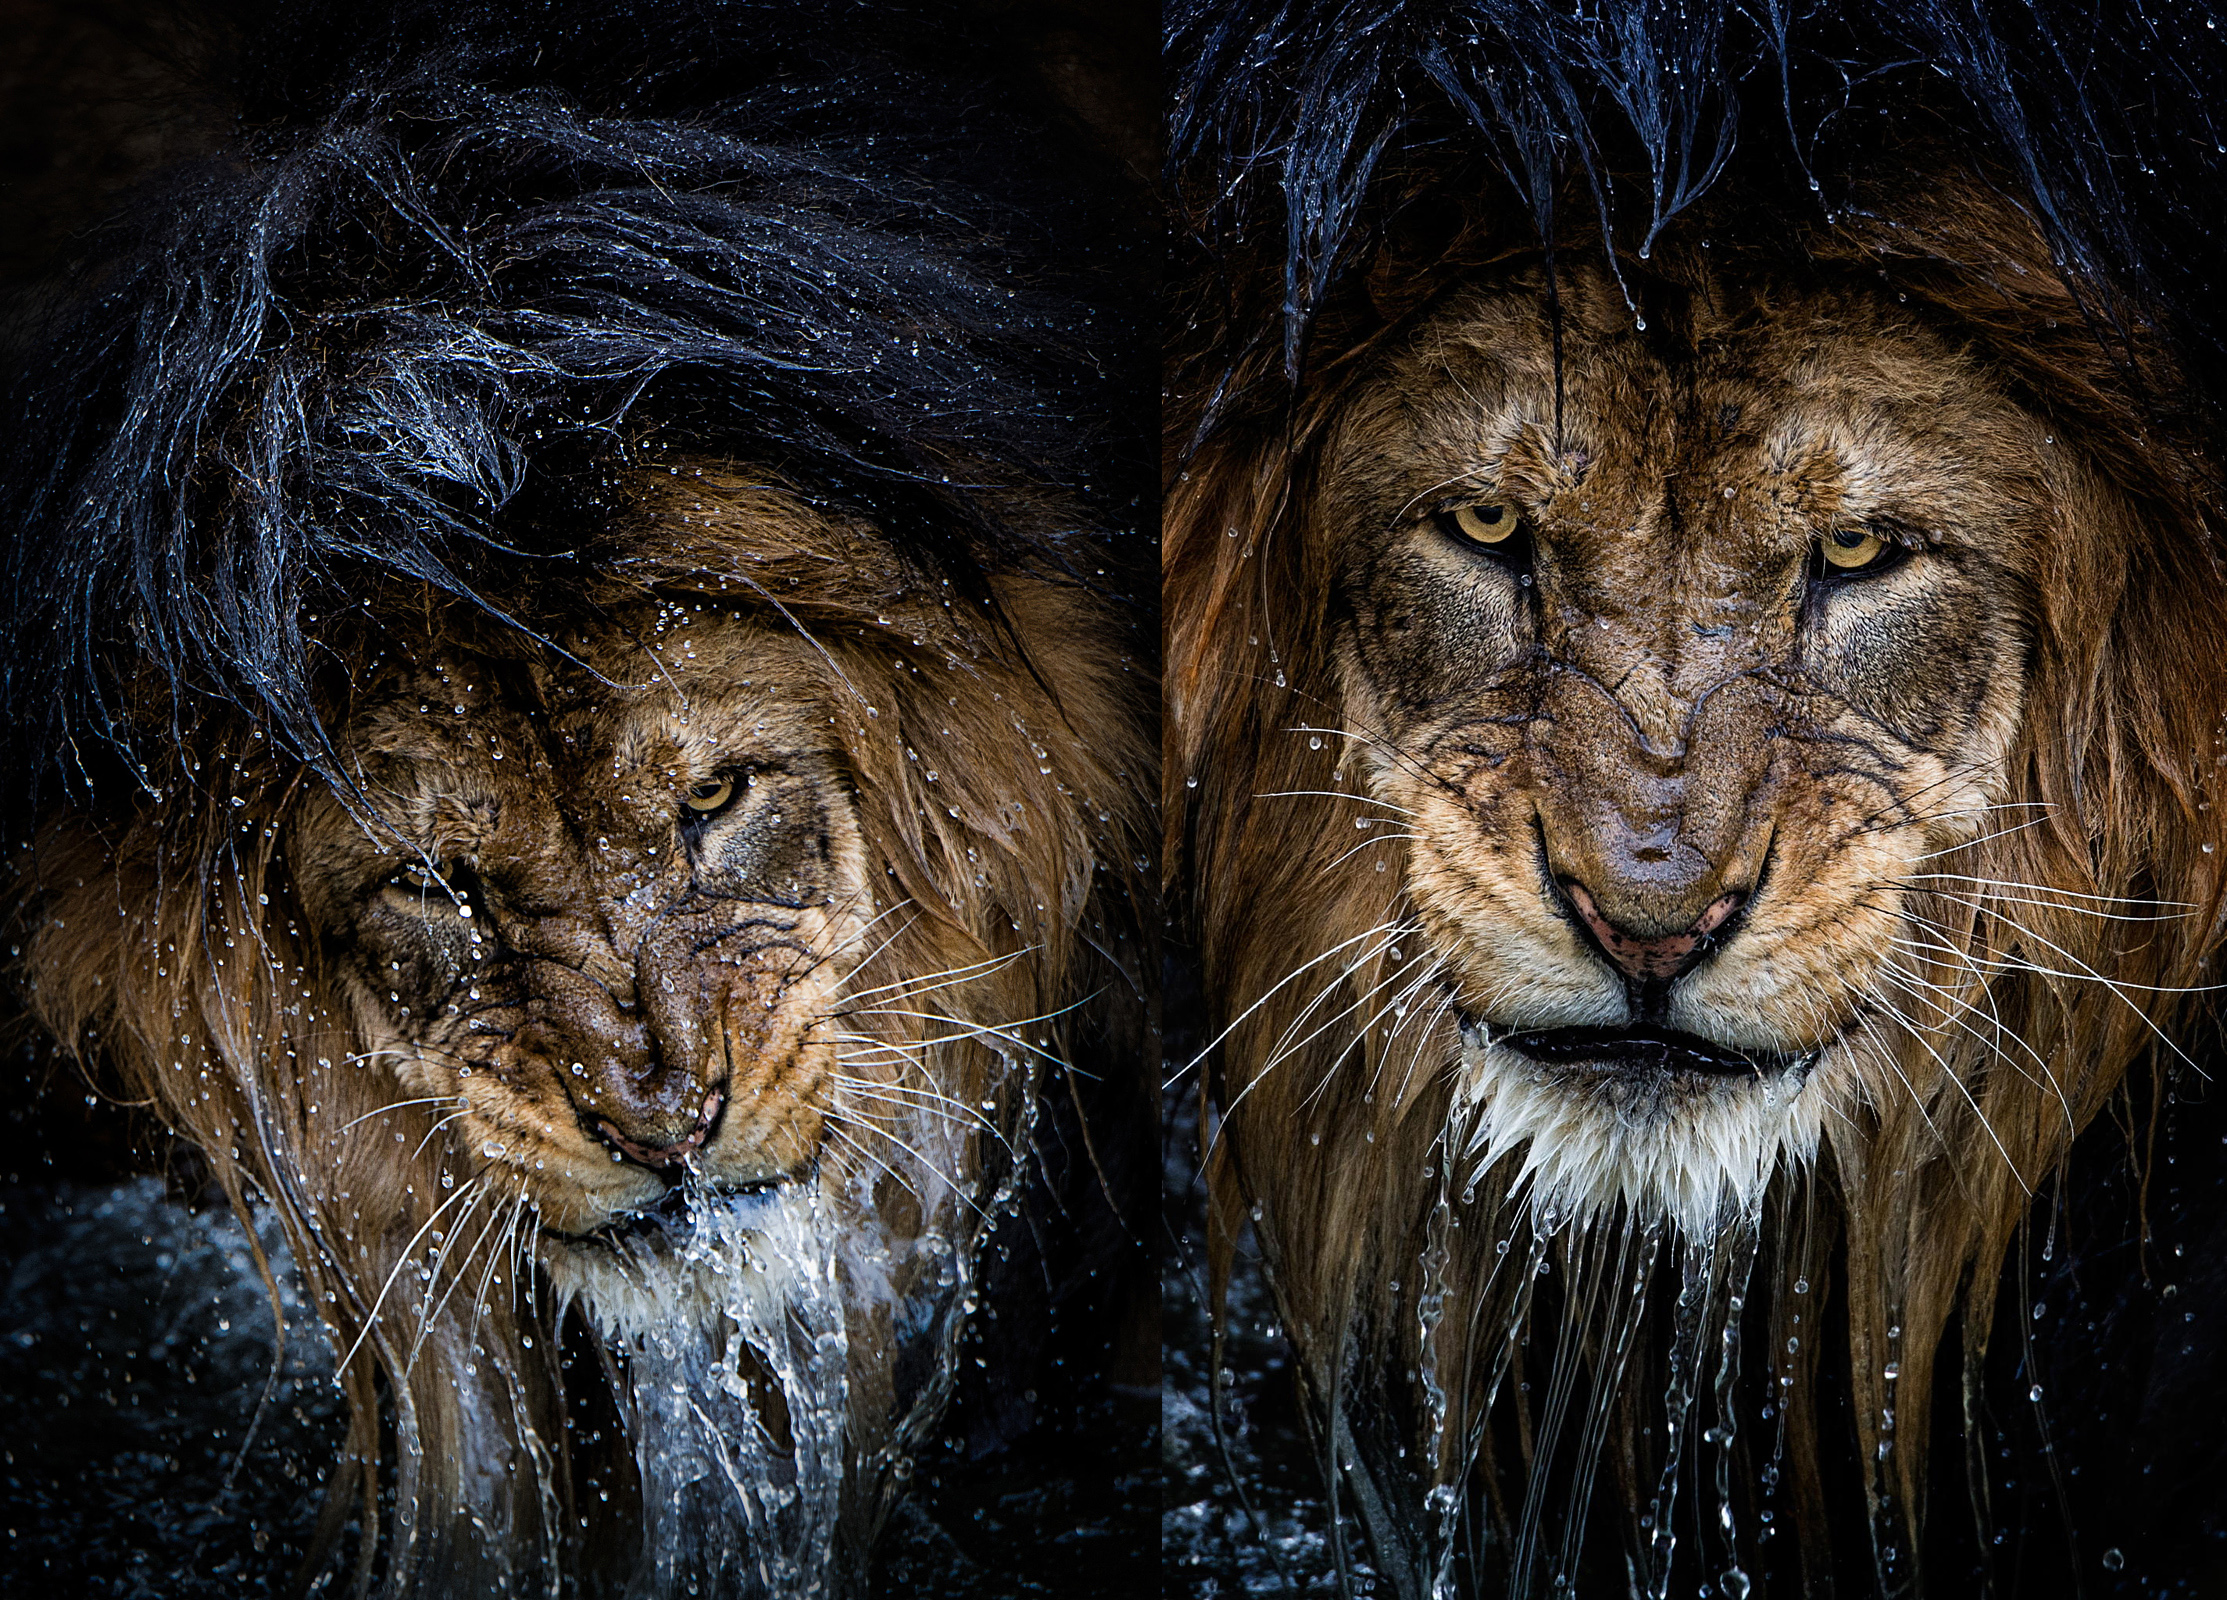 The Story Behind the Most Intense Lion Portrait